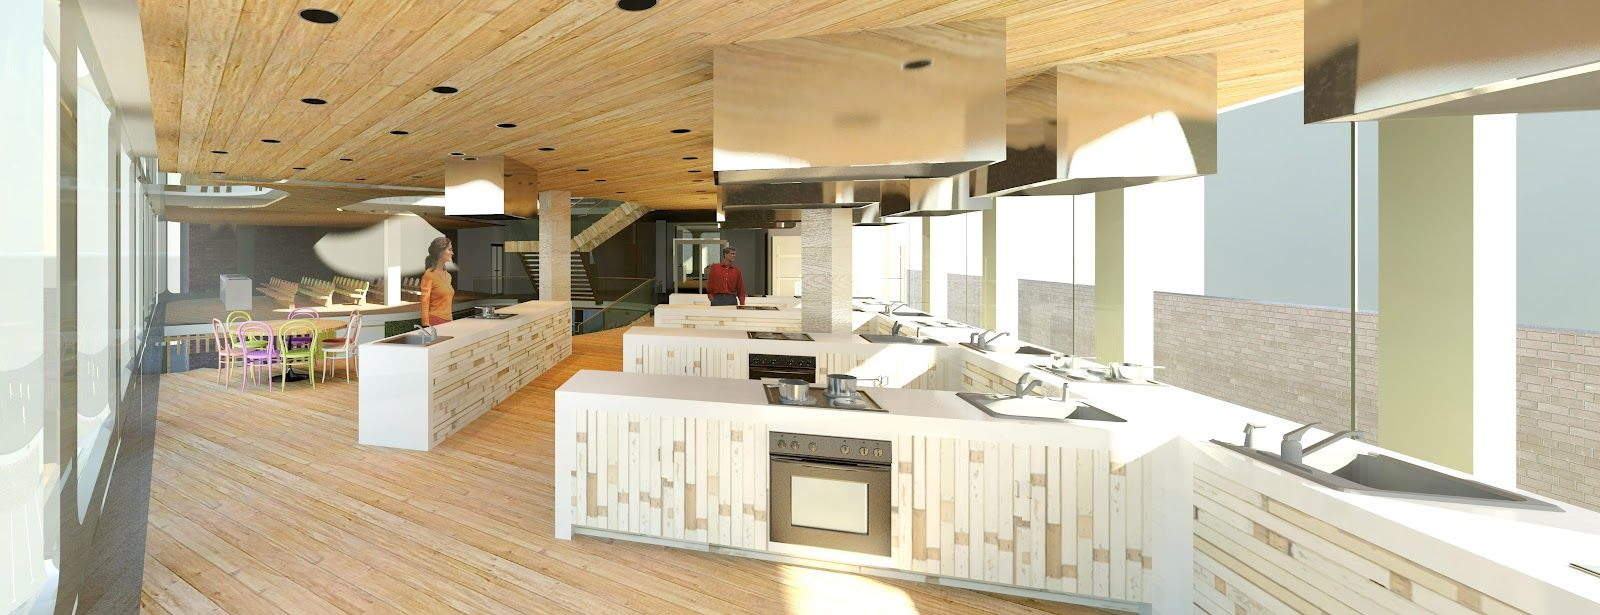 Kitchen Design Degree Plans Great Culinary School Kitchen Design 1600 X 615 · 212 Kb · Jpeg .